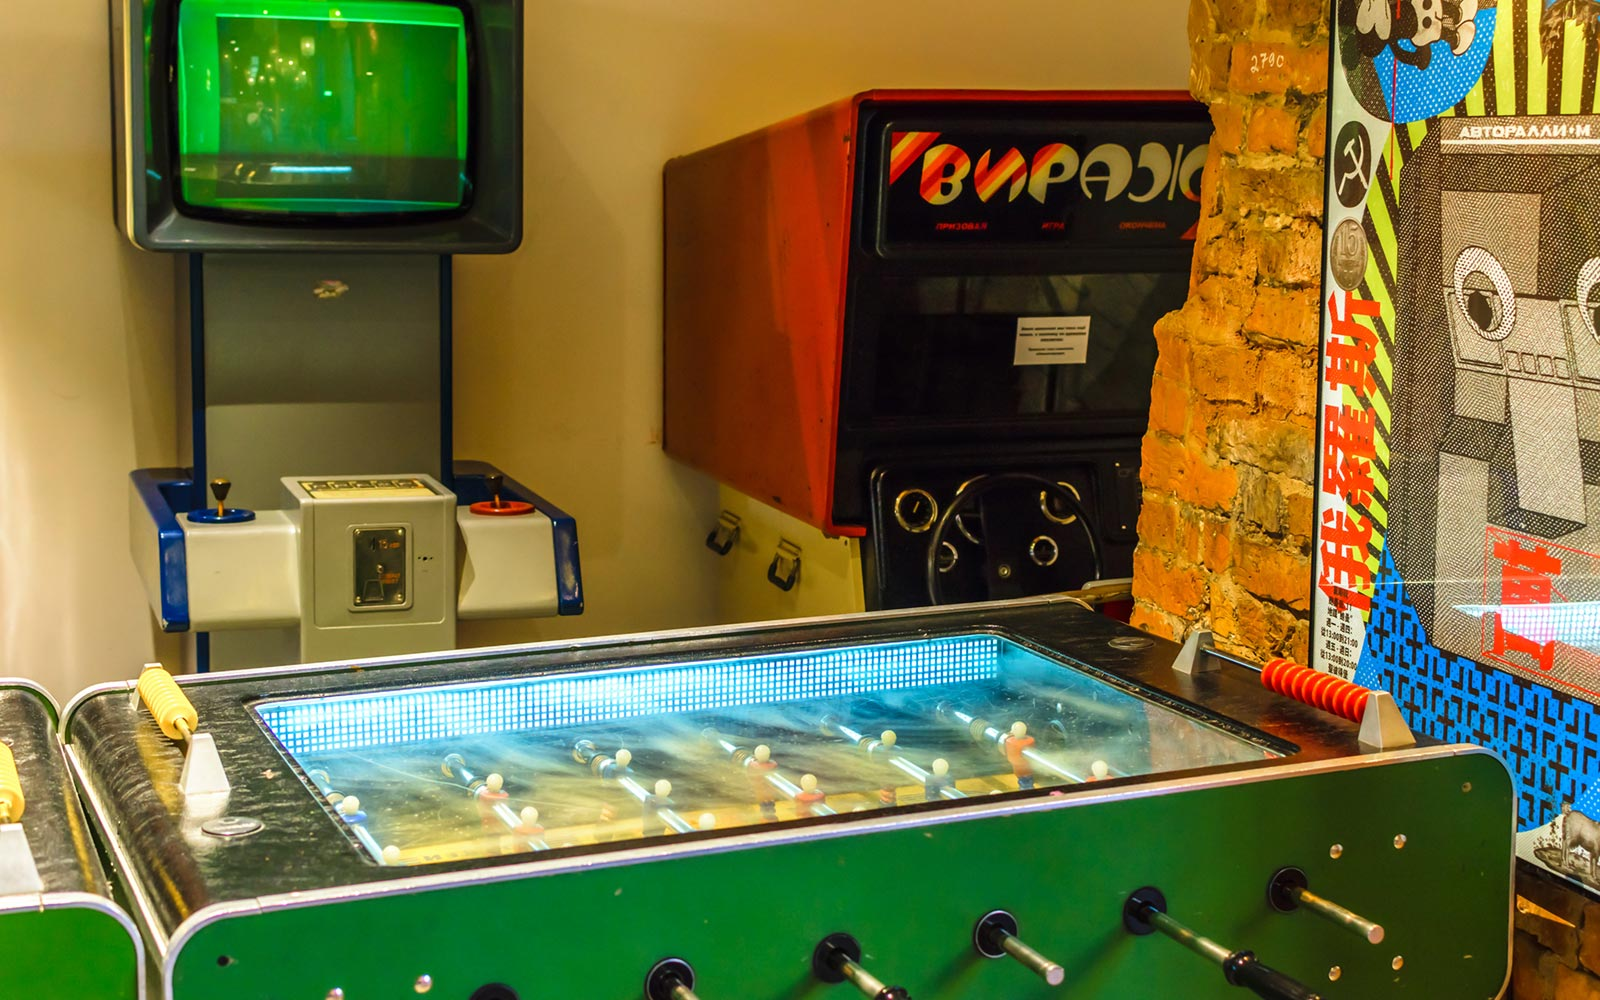 Foosball at the Museum of Soviet Arcade Machines